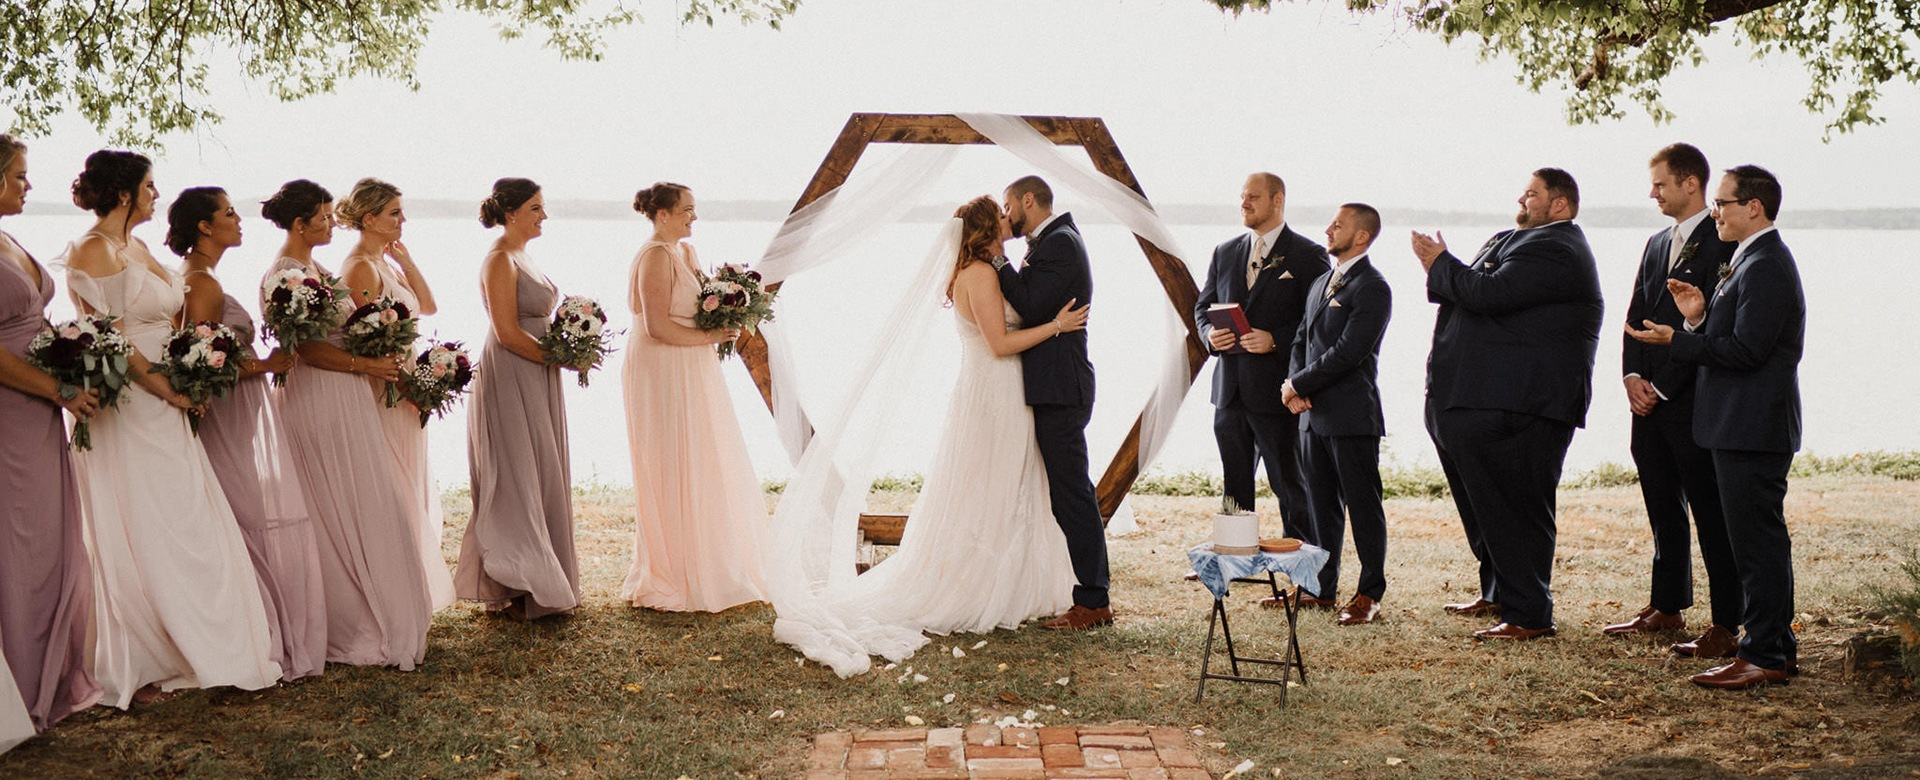 A wedding ceremony takes place in front of the Wicomico River.